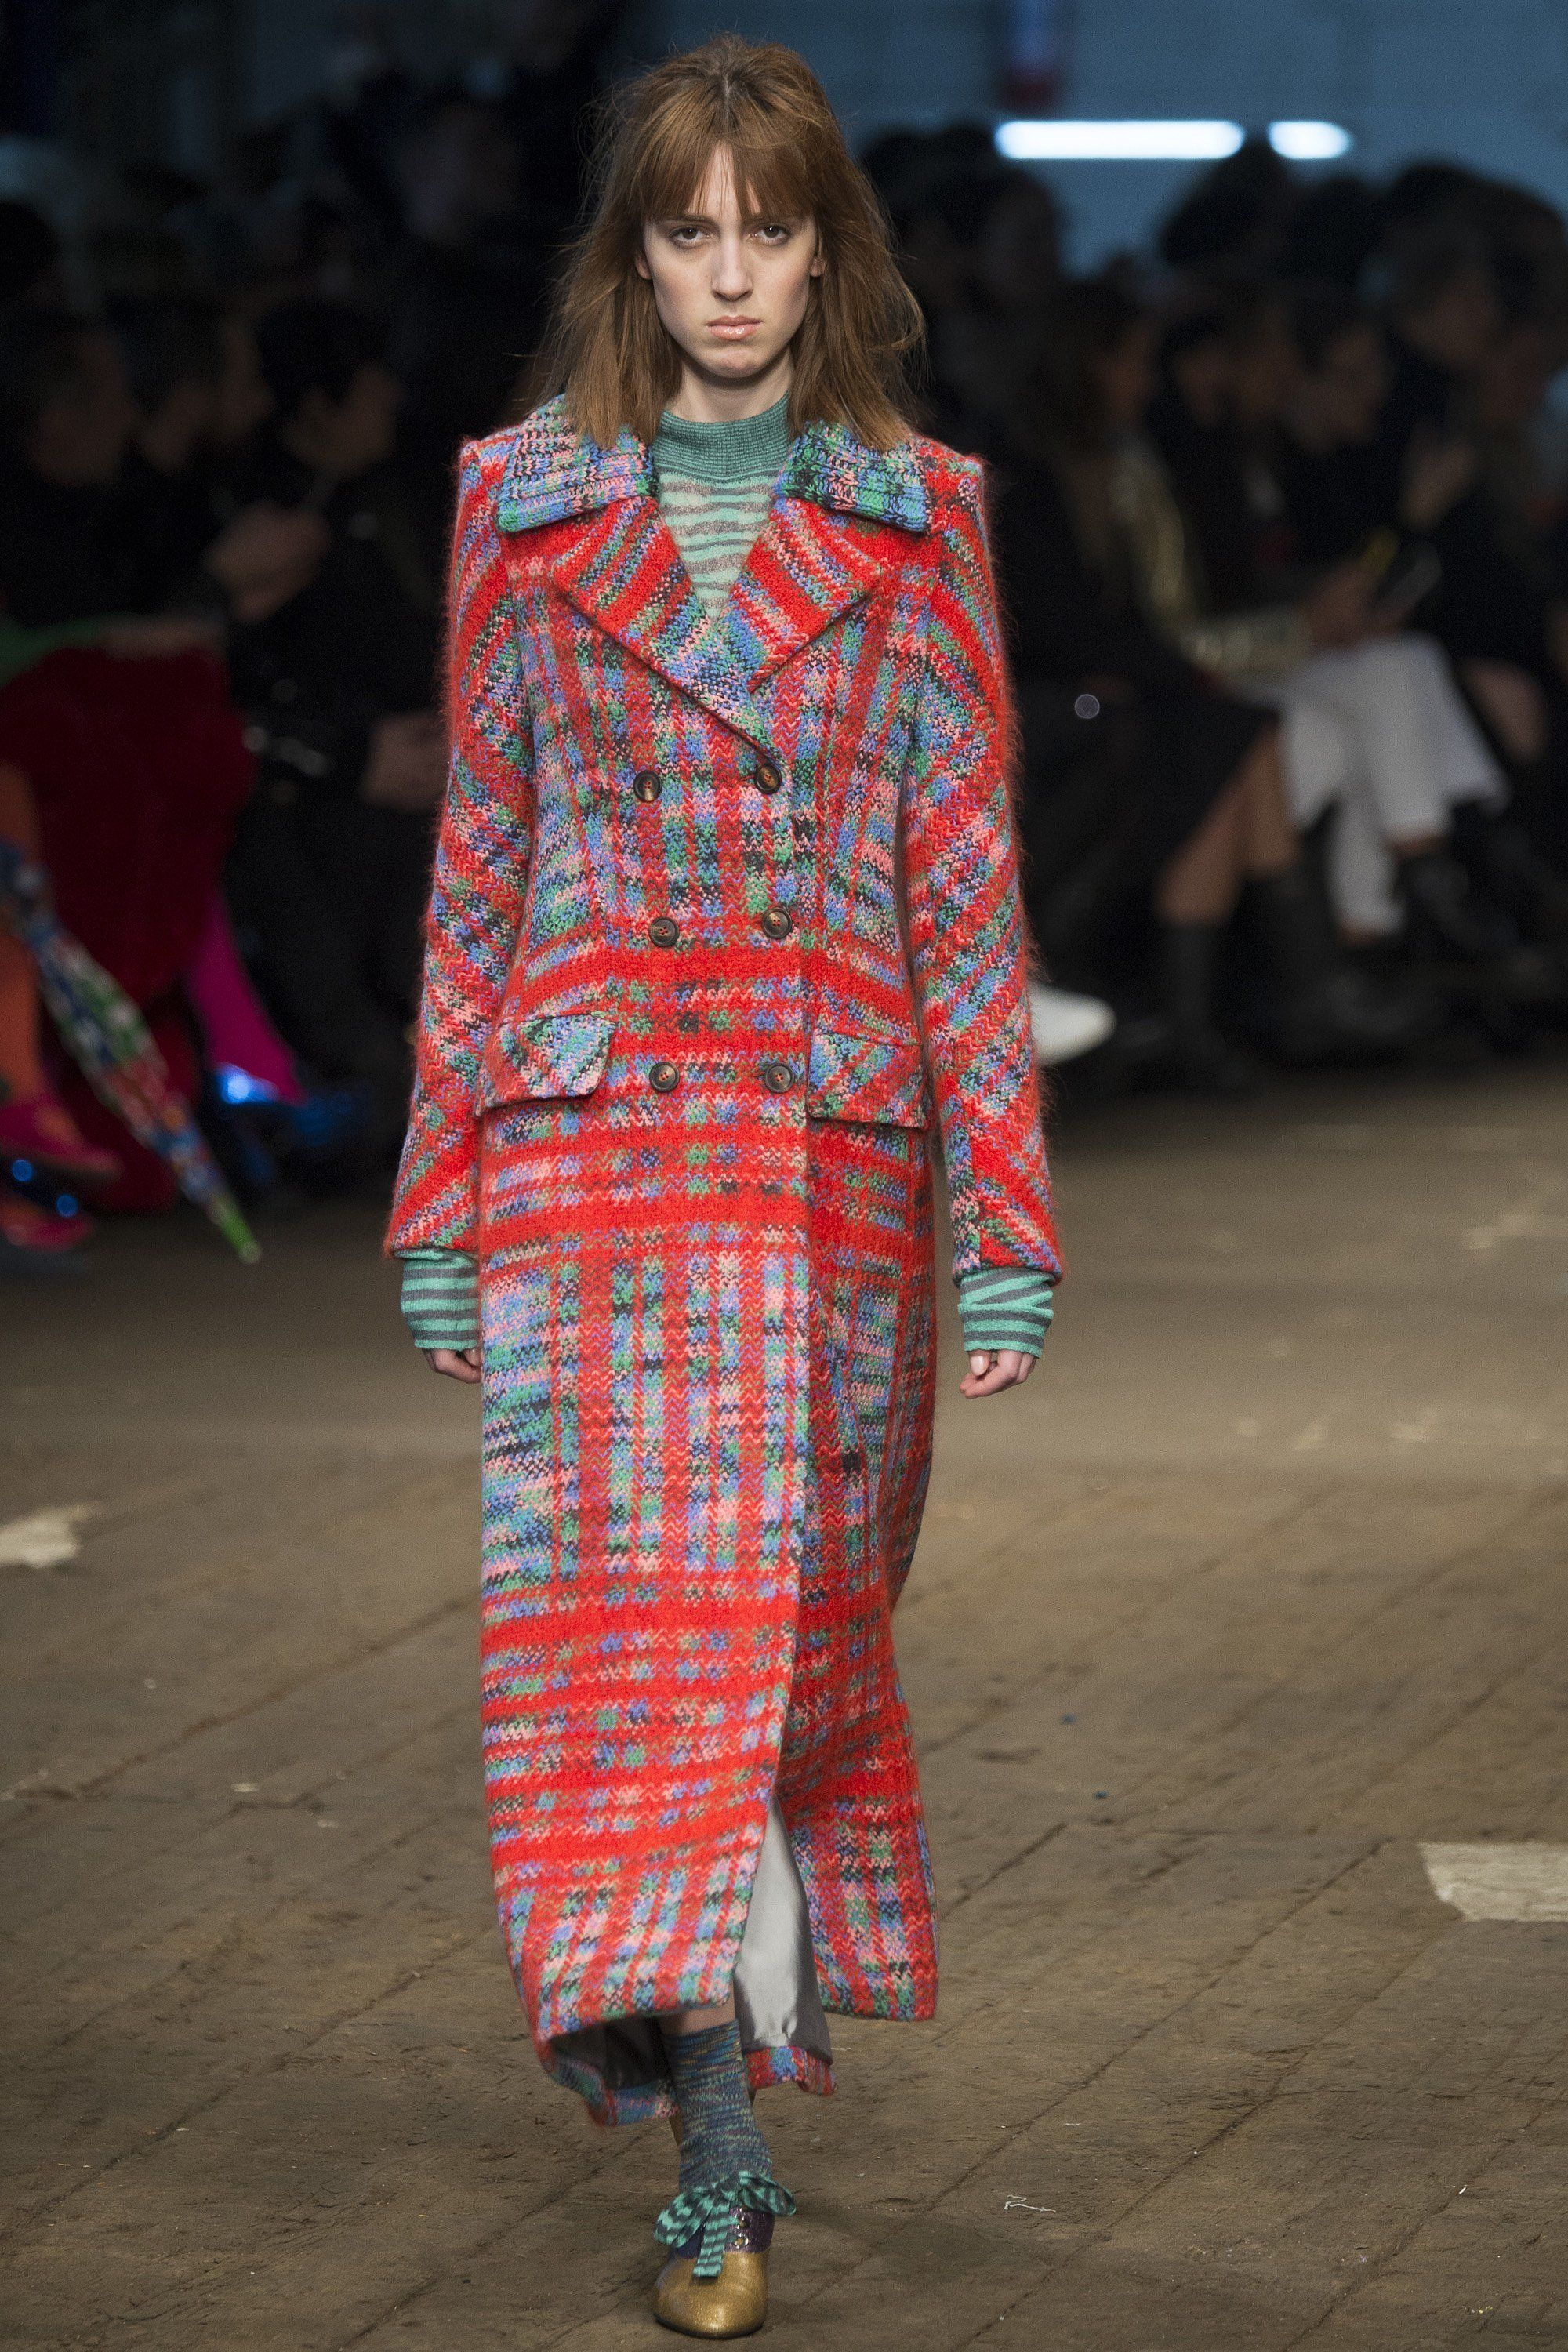 The 10 Milan Fashion Week Trends Everyone Will Be Wearing This Autumn